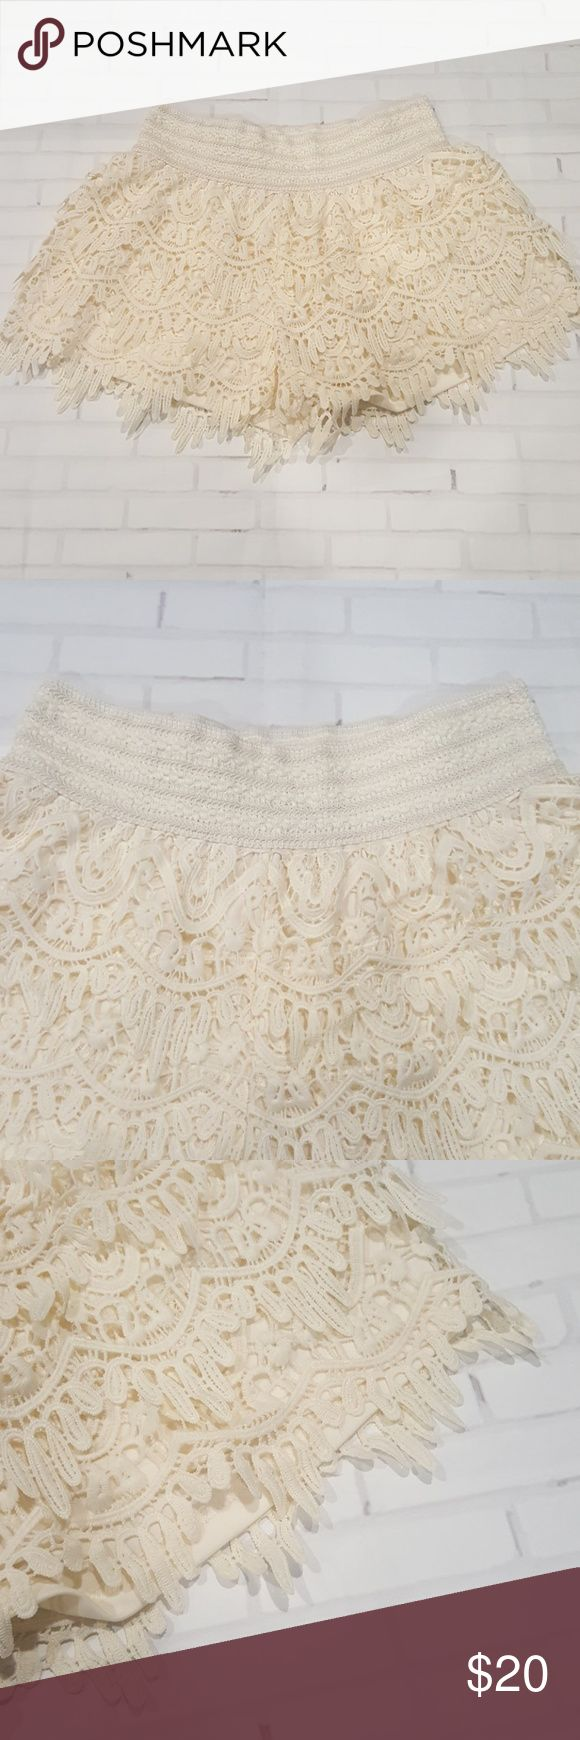 "Vanity Lace Shorts - Size Medium Ivory (cream) lace shorts by Vanity. Elastic waist and lined. Waist measures at: 13"" Inseam: 2.5"" Length from waist: 12"" *measurements are laying flat  100% Polyester  Mint condition! Vanity Shorts Bermudas"